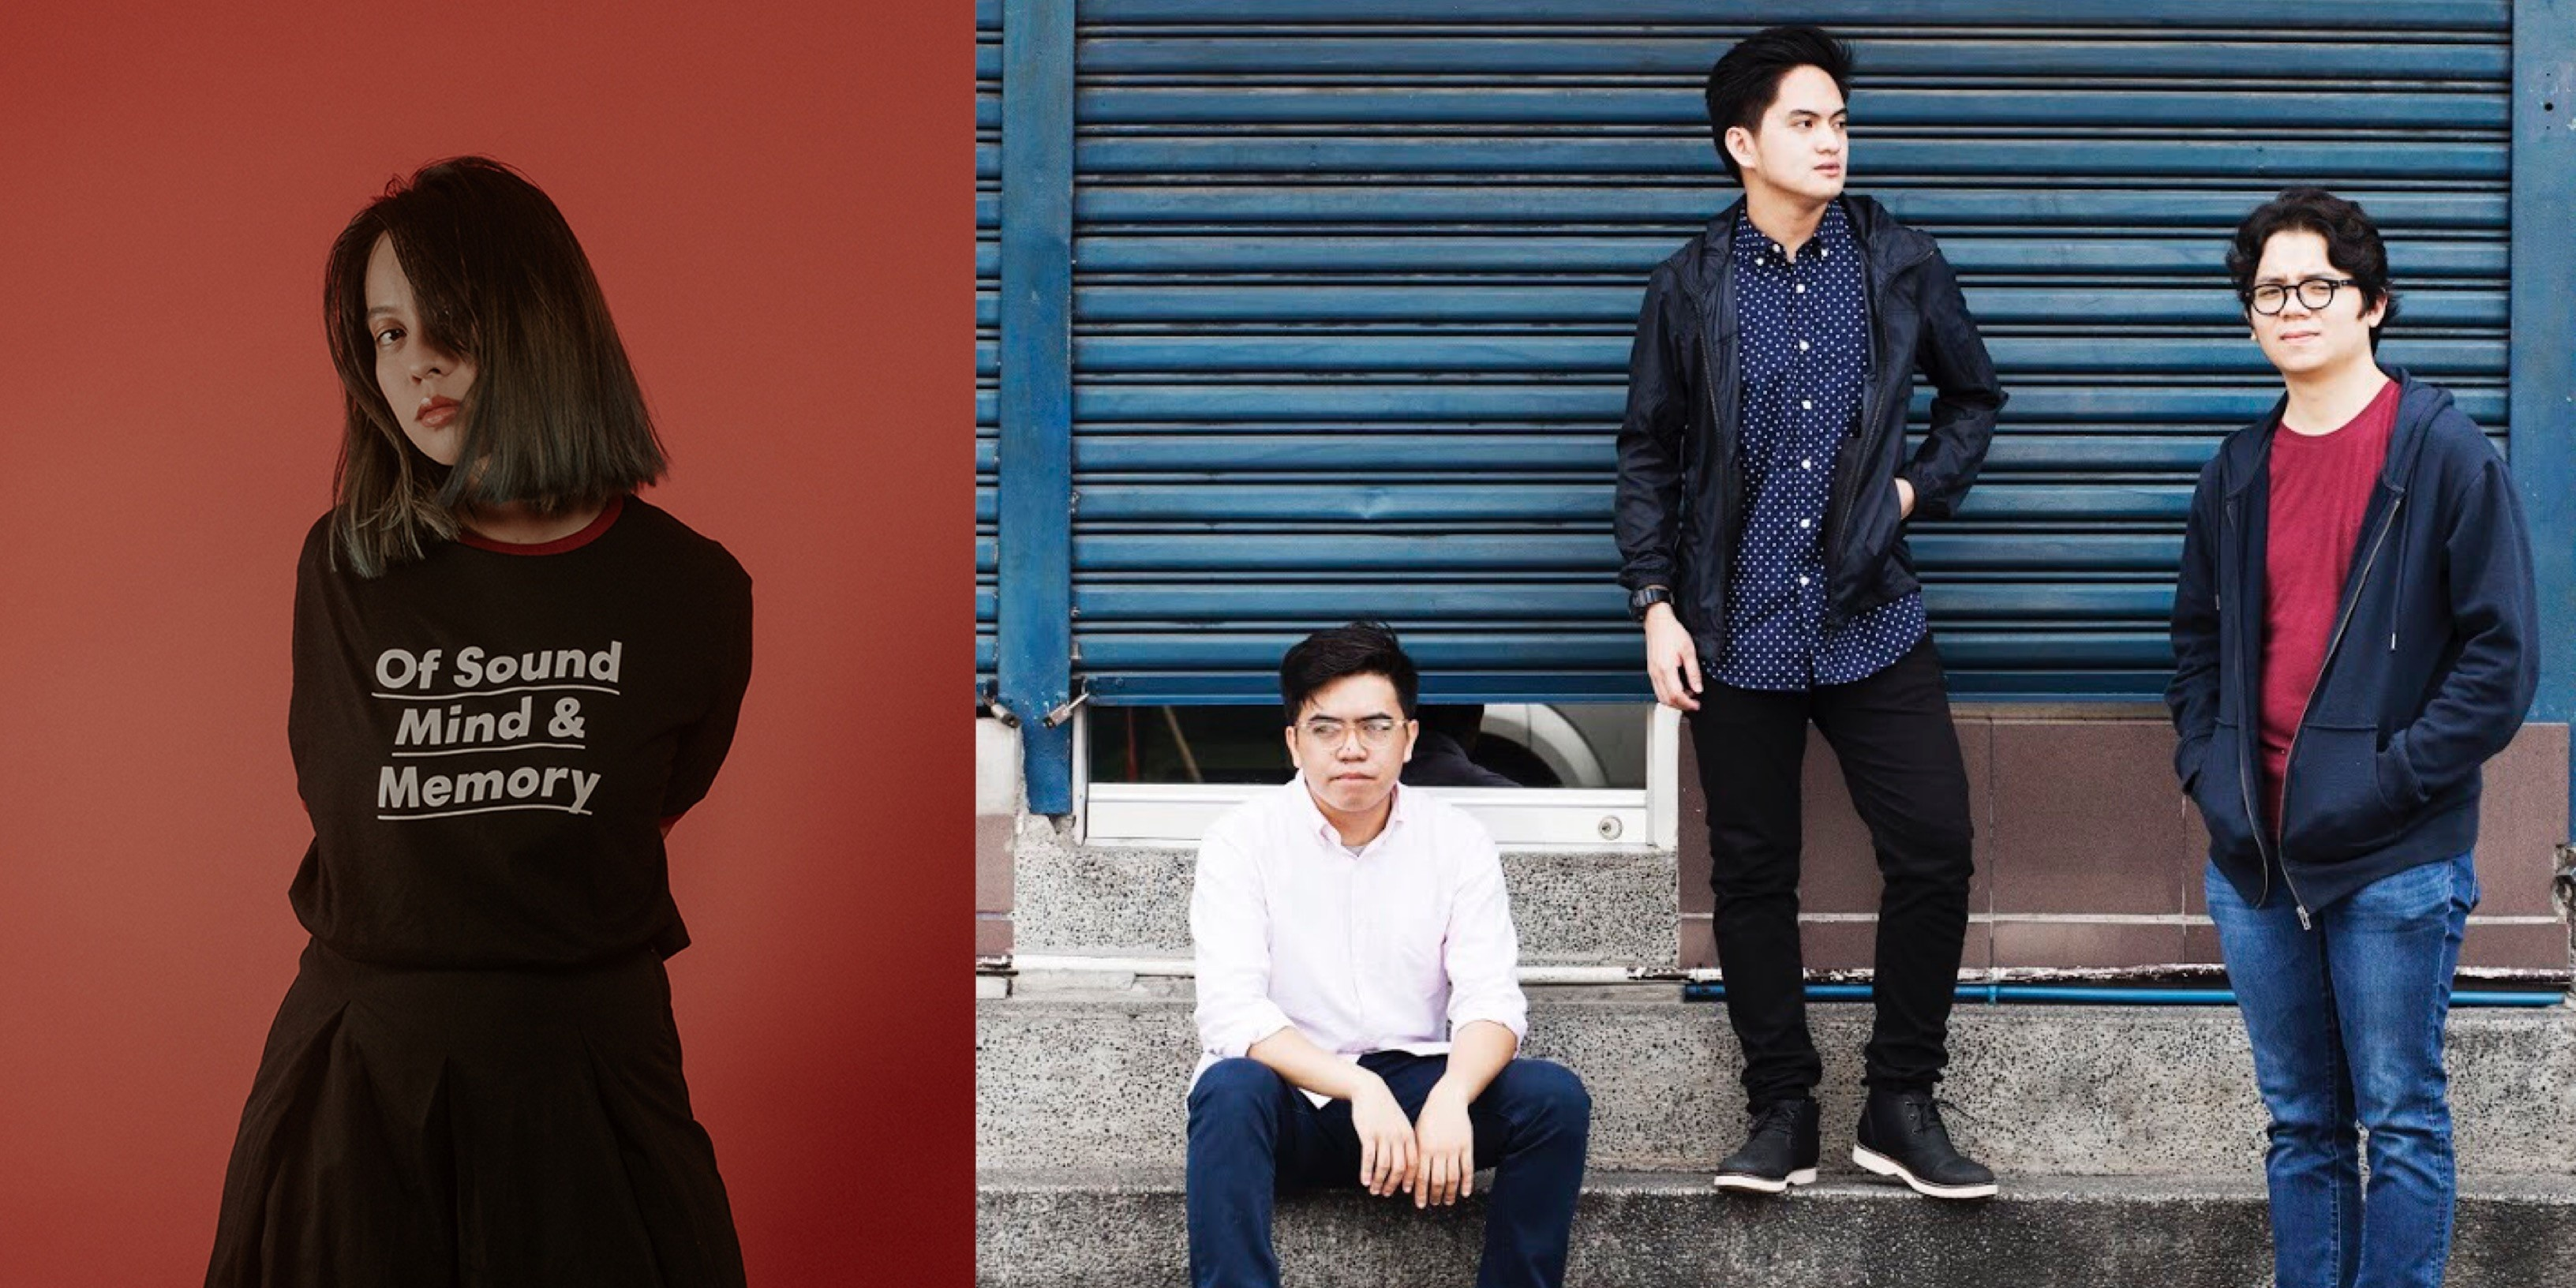 Reese Lansangan and Tom's Story to perform in a back-to-back concert for Karpos Live